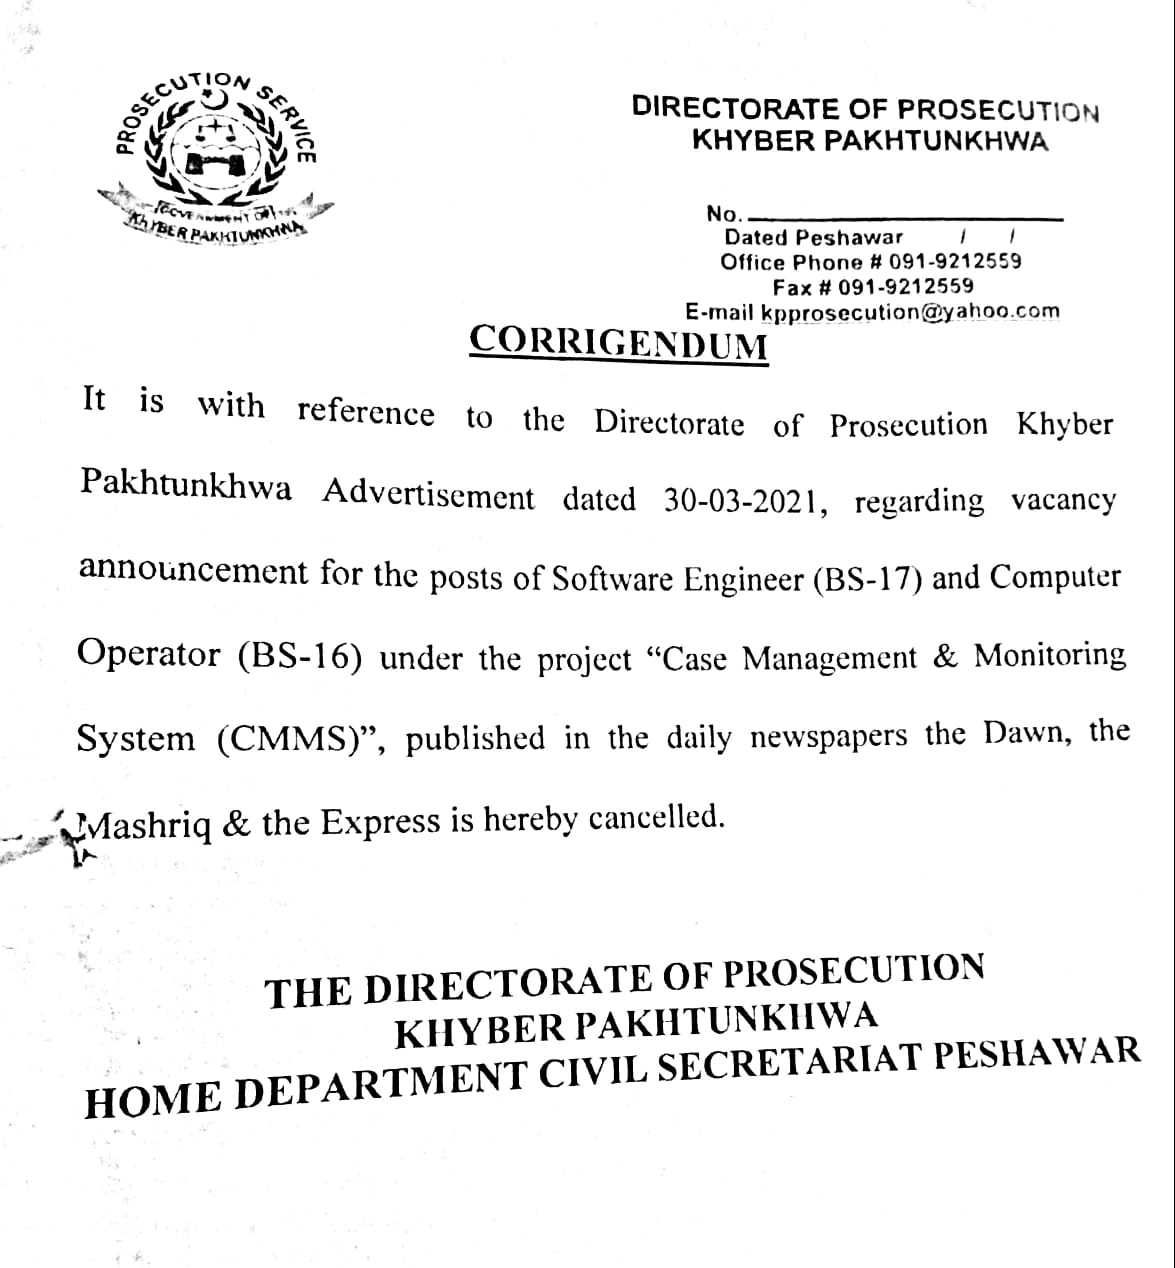 Directorate of Prosecution vacancy regarding Software Engineer (BS-17) & Computer Operator (BS-16) under the project